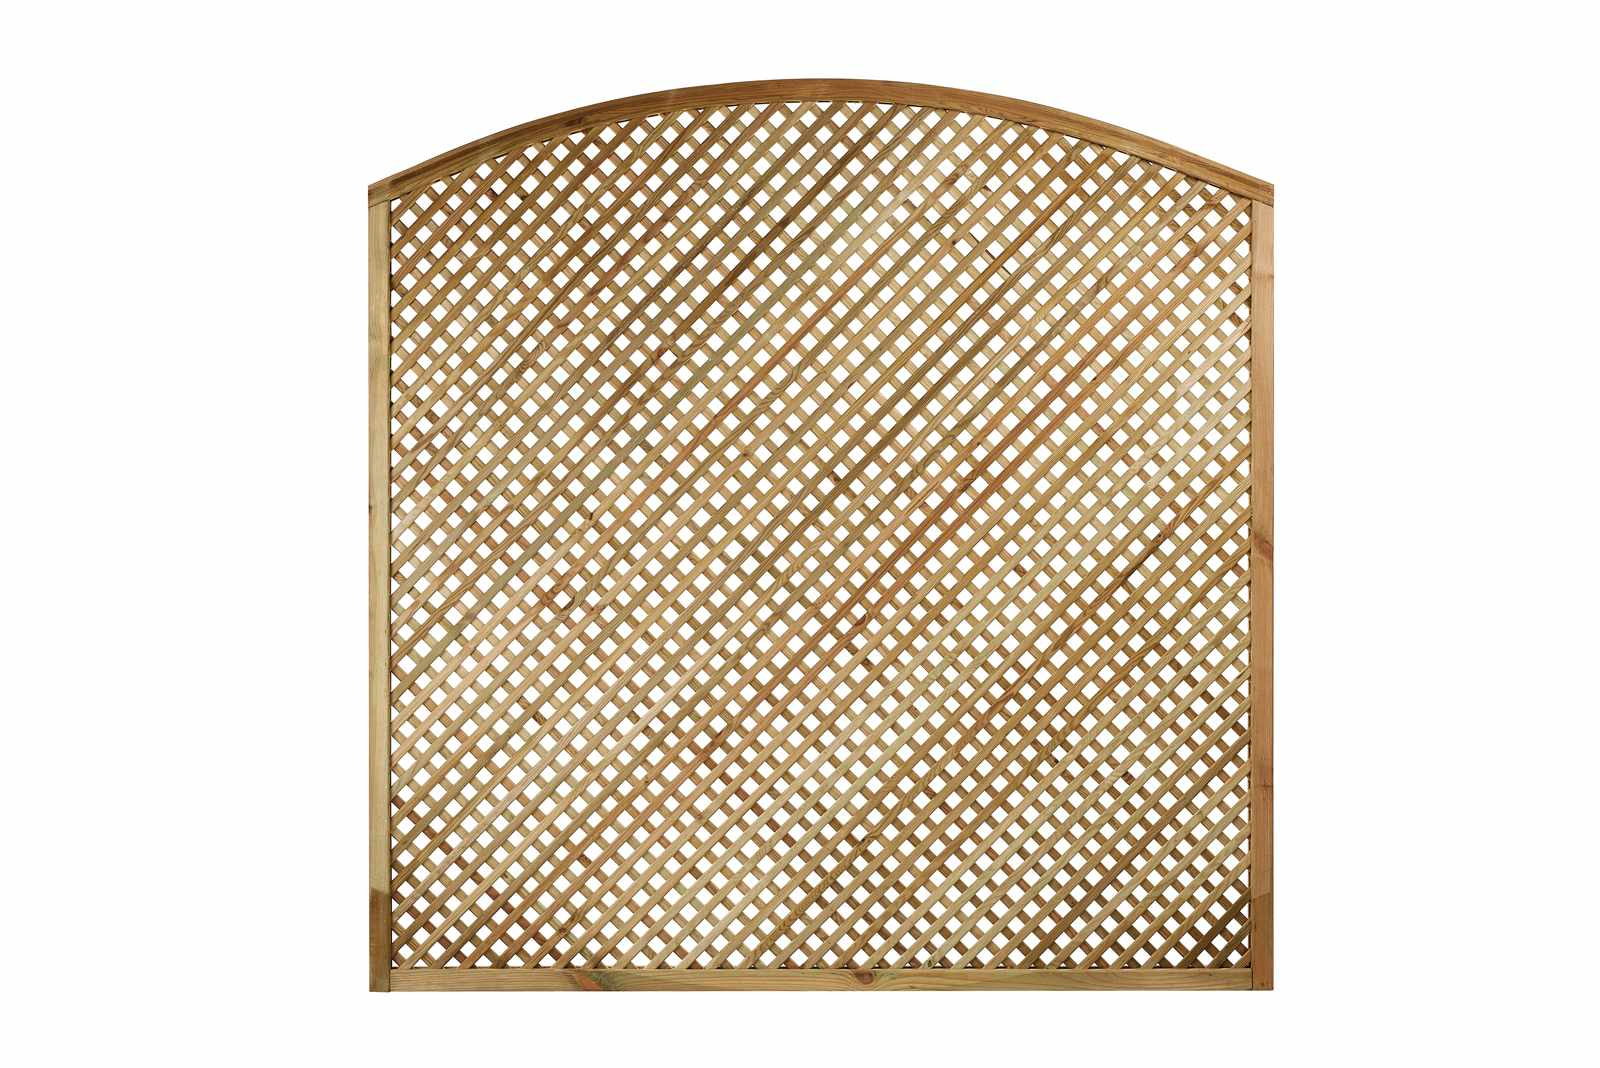 Diagonal Trellis Privacy Convex Arch Top Panel 20mm Gaps